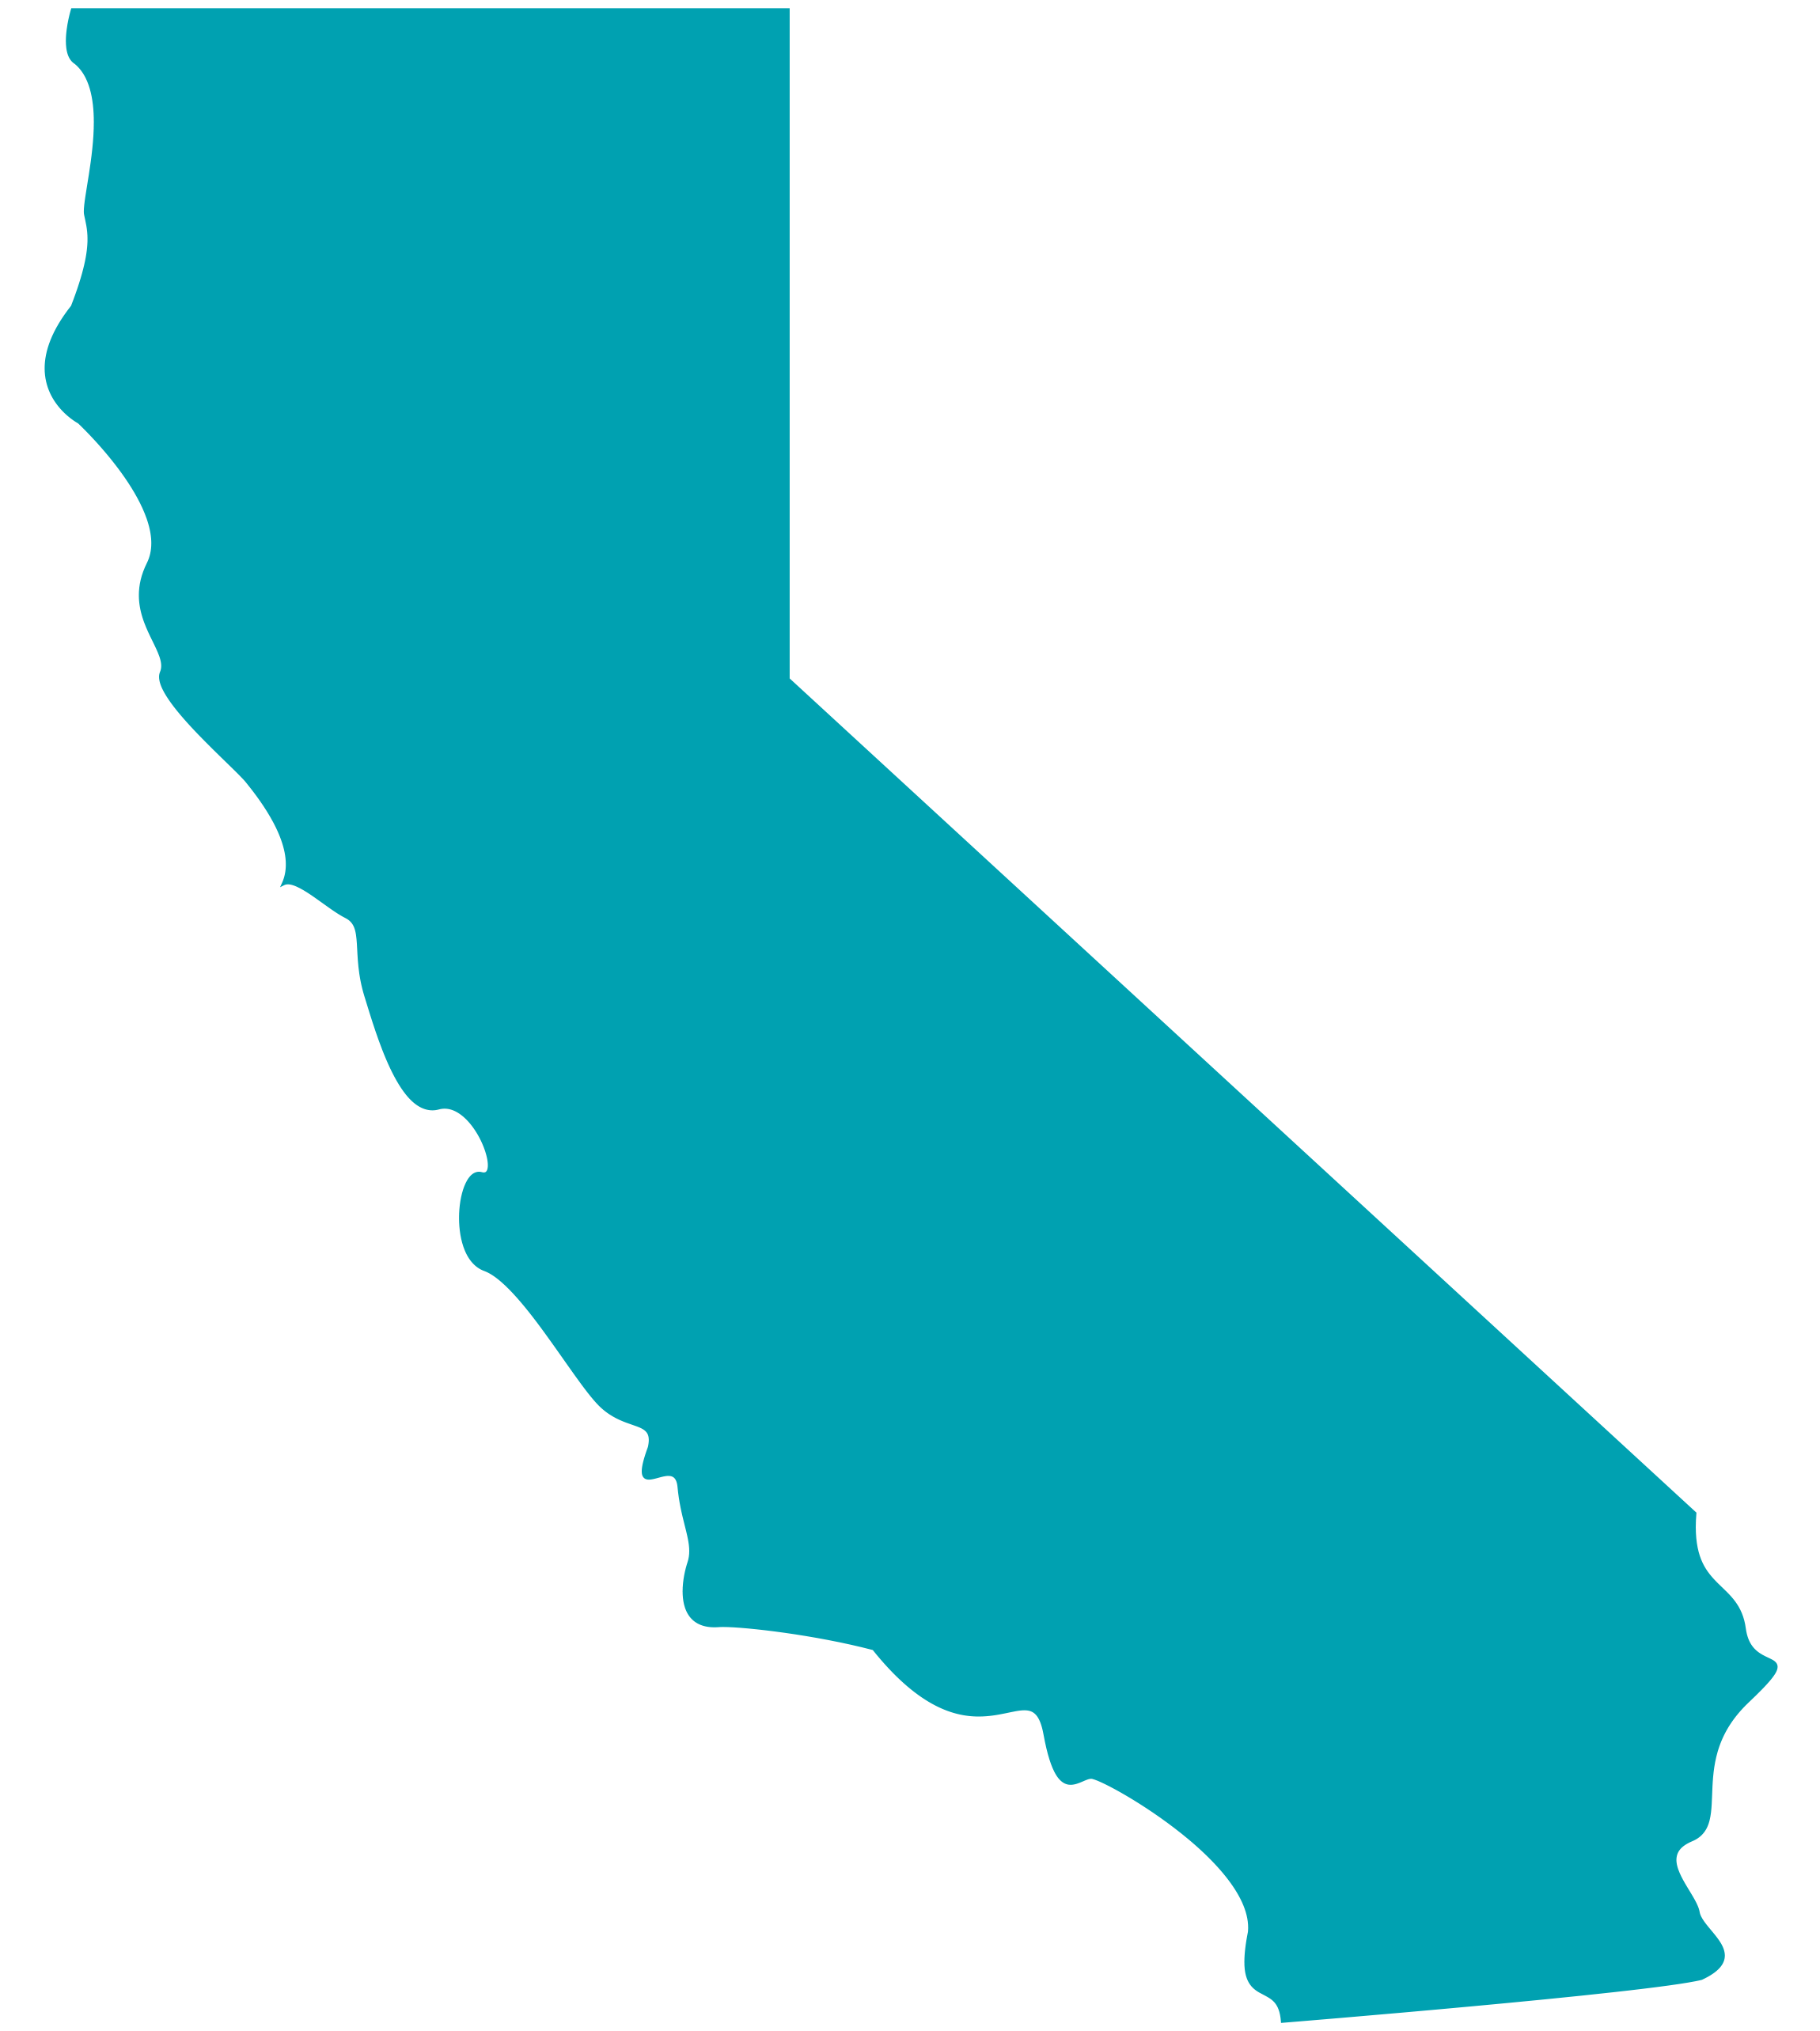 Nickel clipart clip art. Free california outline download